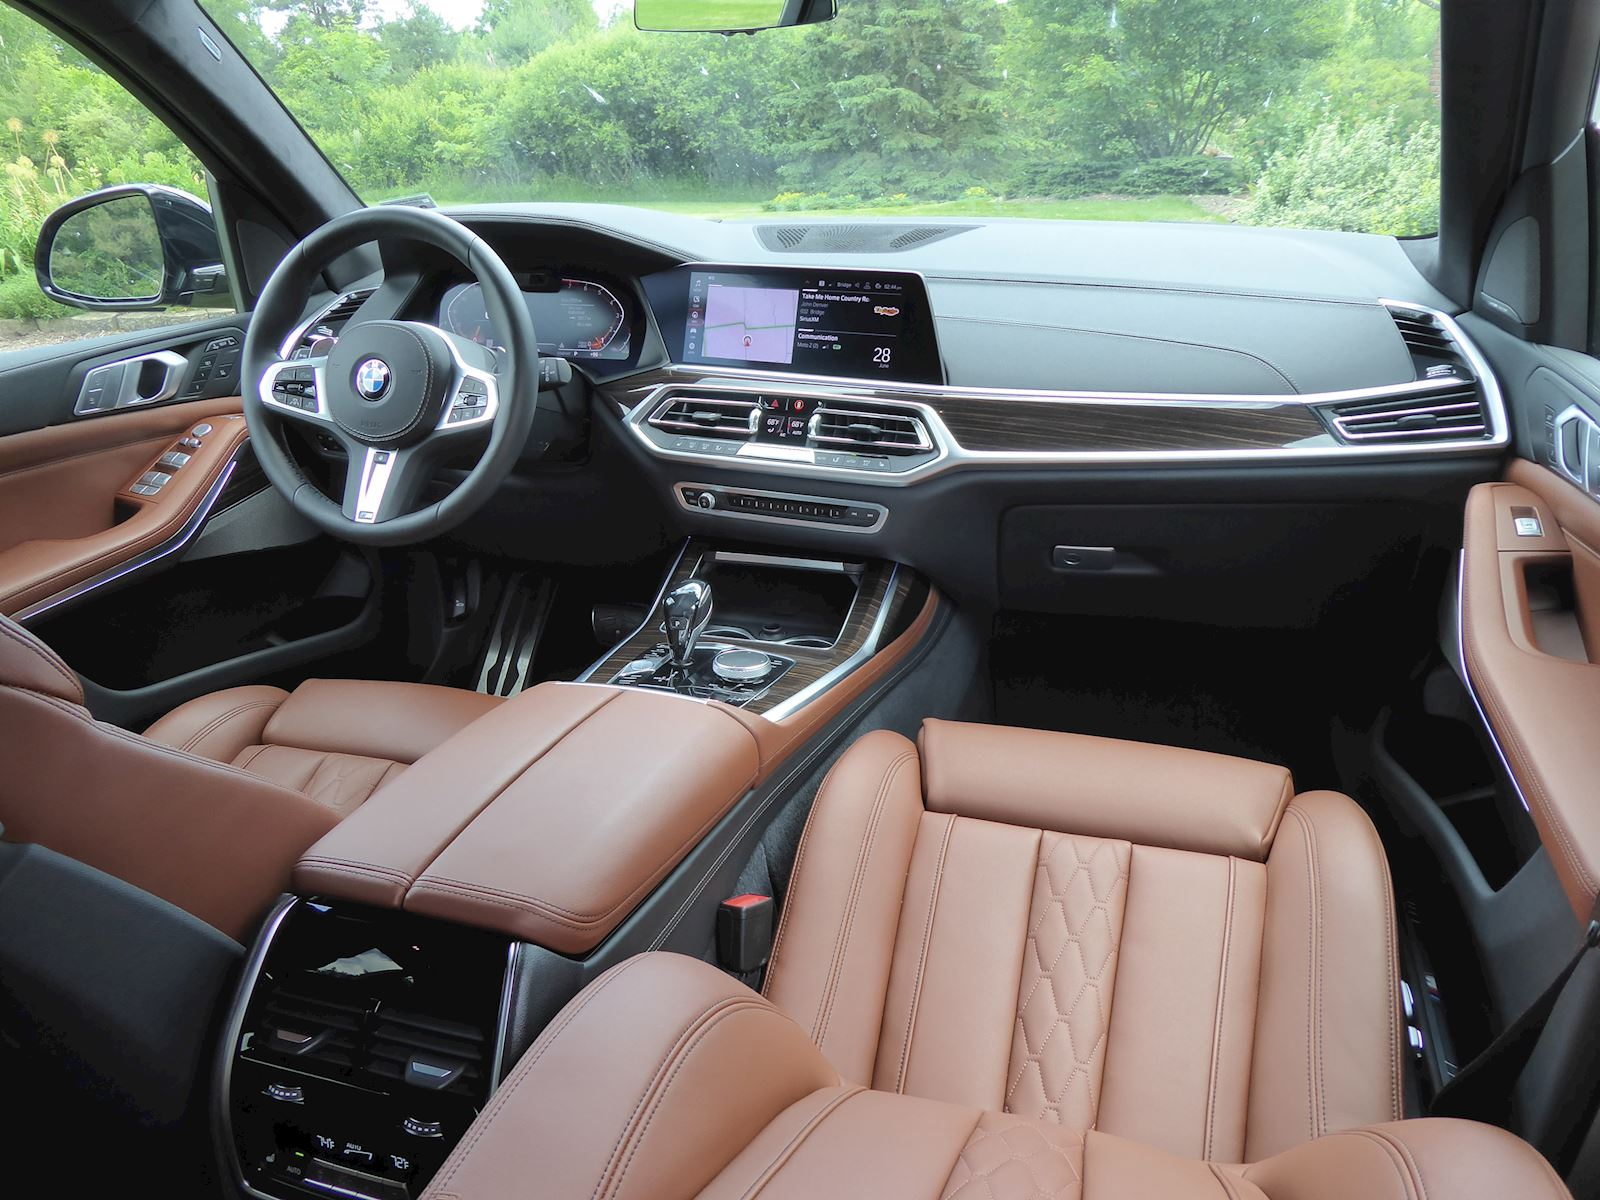 BMW X7 dashboard + front row seats photo